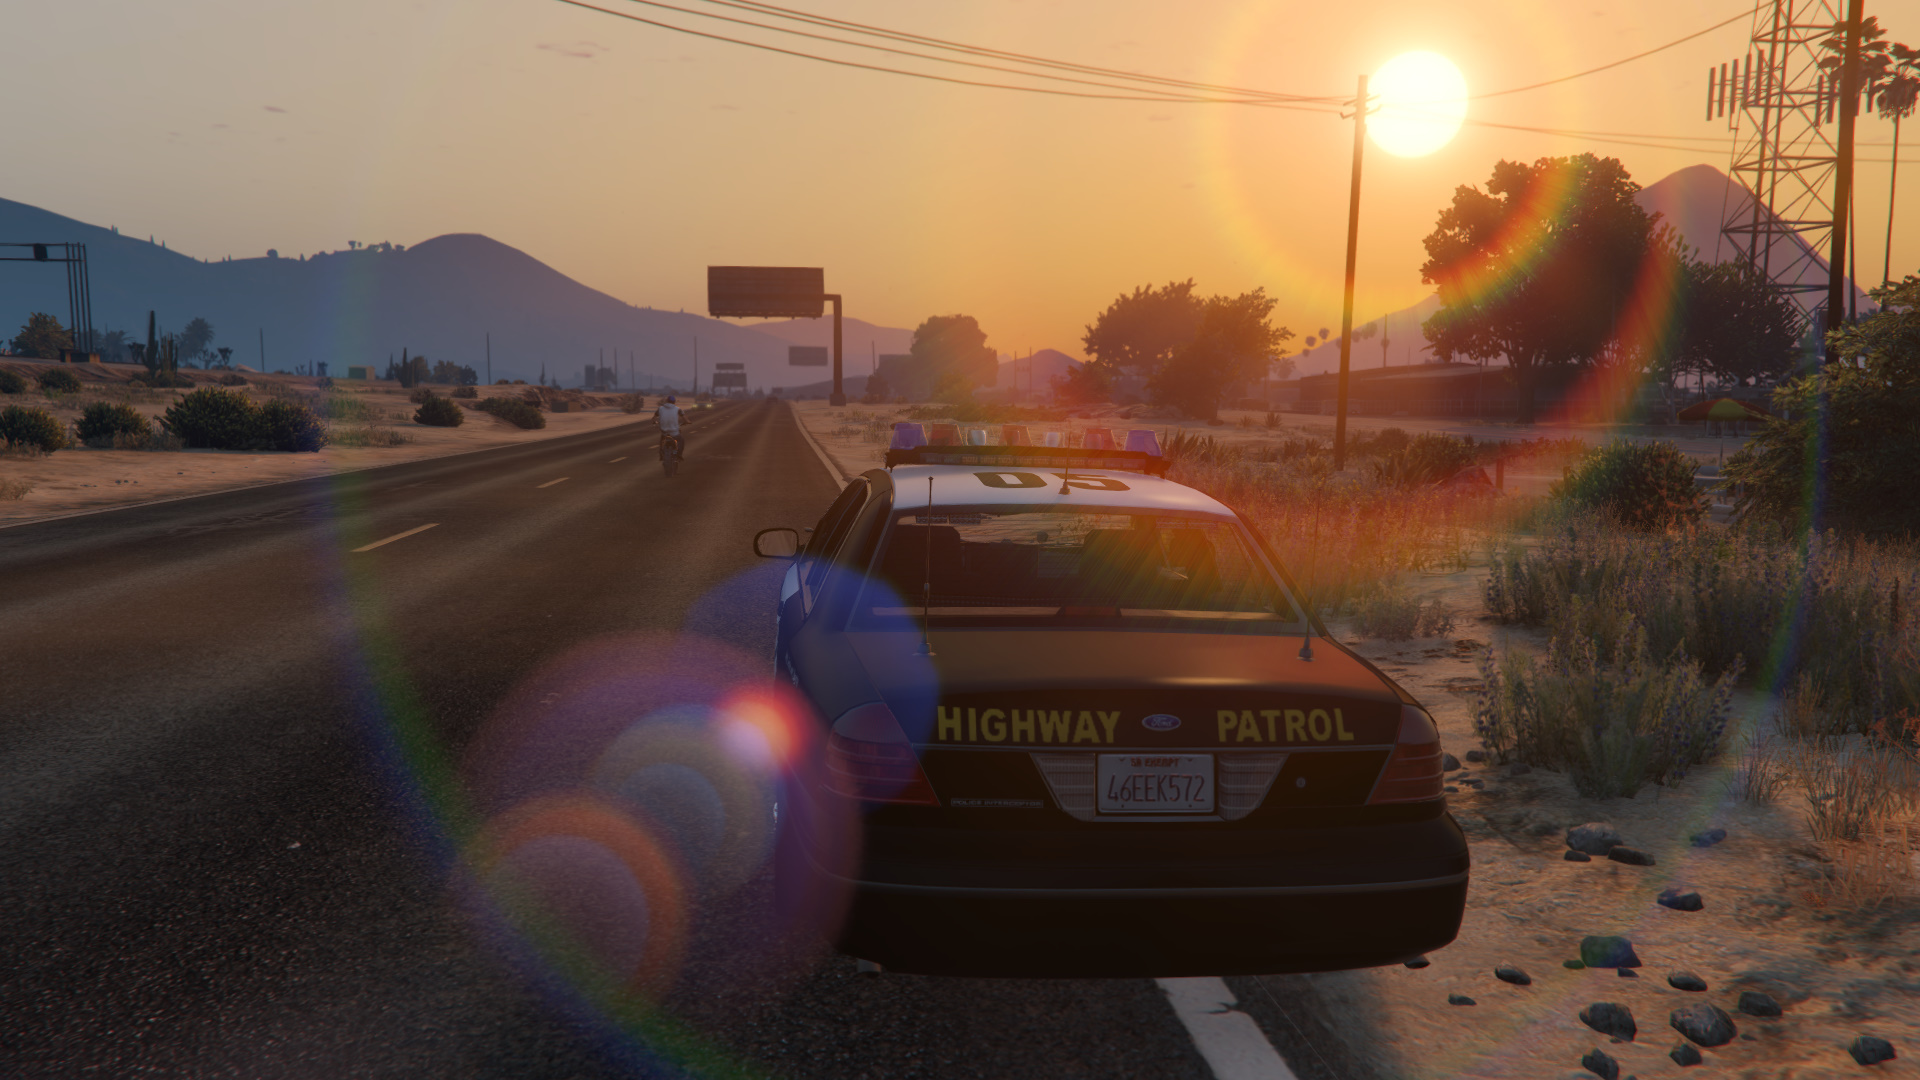 Chp cvpi with fs vector lightbar gta5 mods 0b066c gta5 2015 09 13 10 21 57 327 aloadofball Gallery